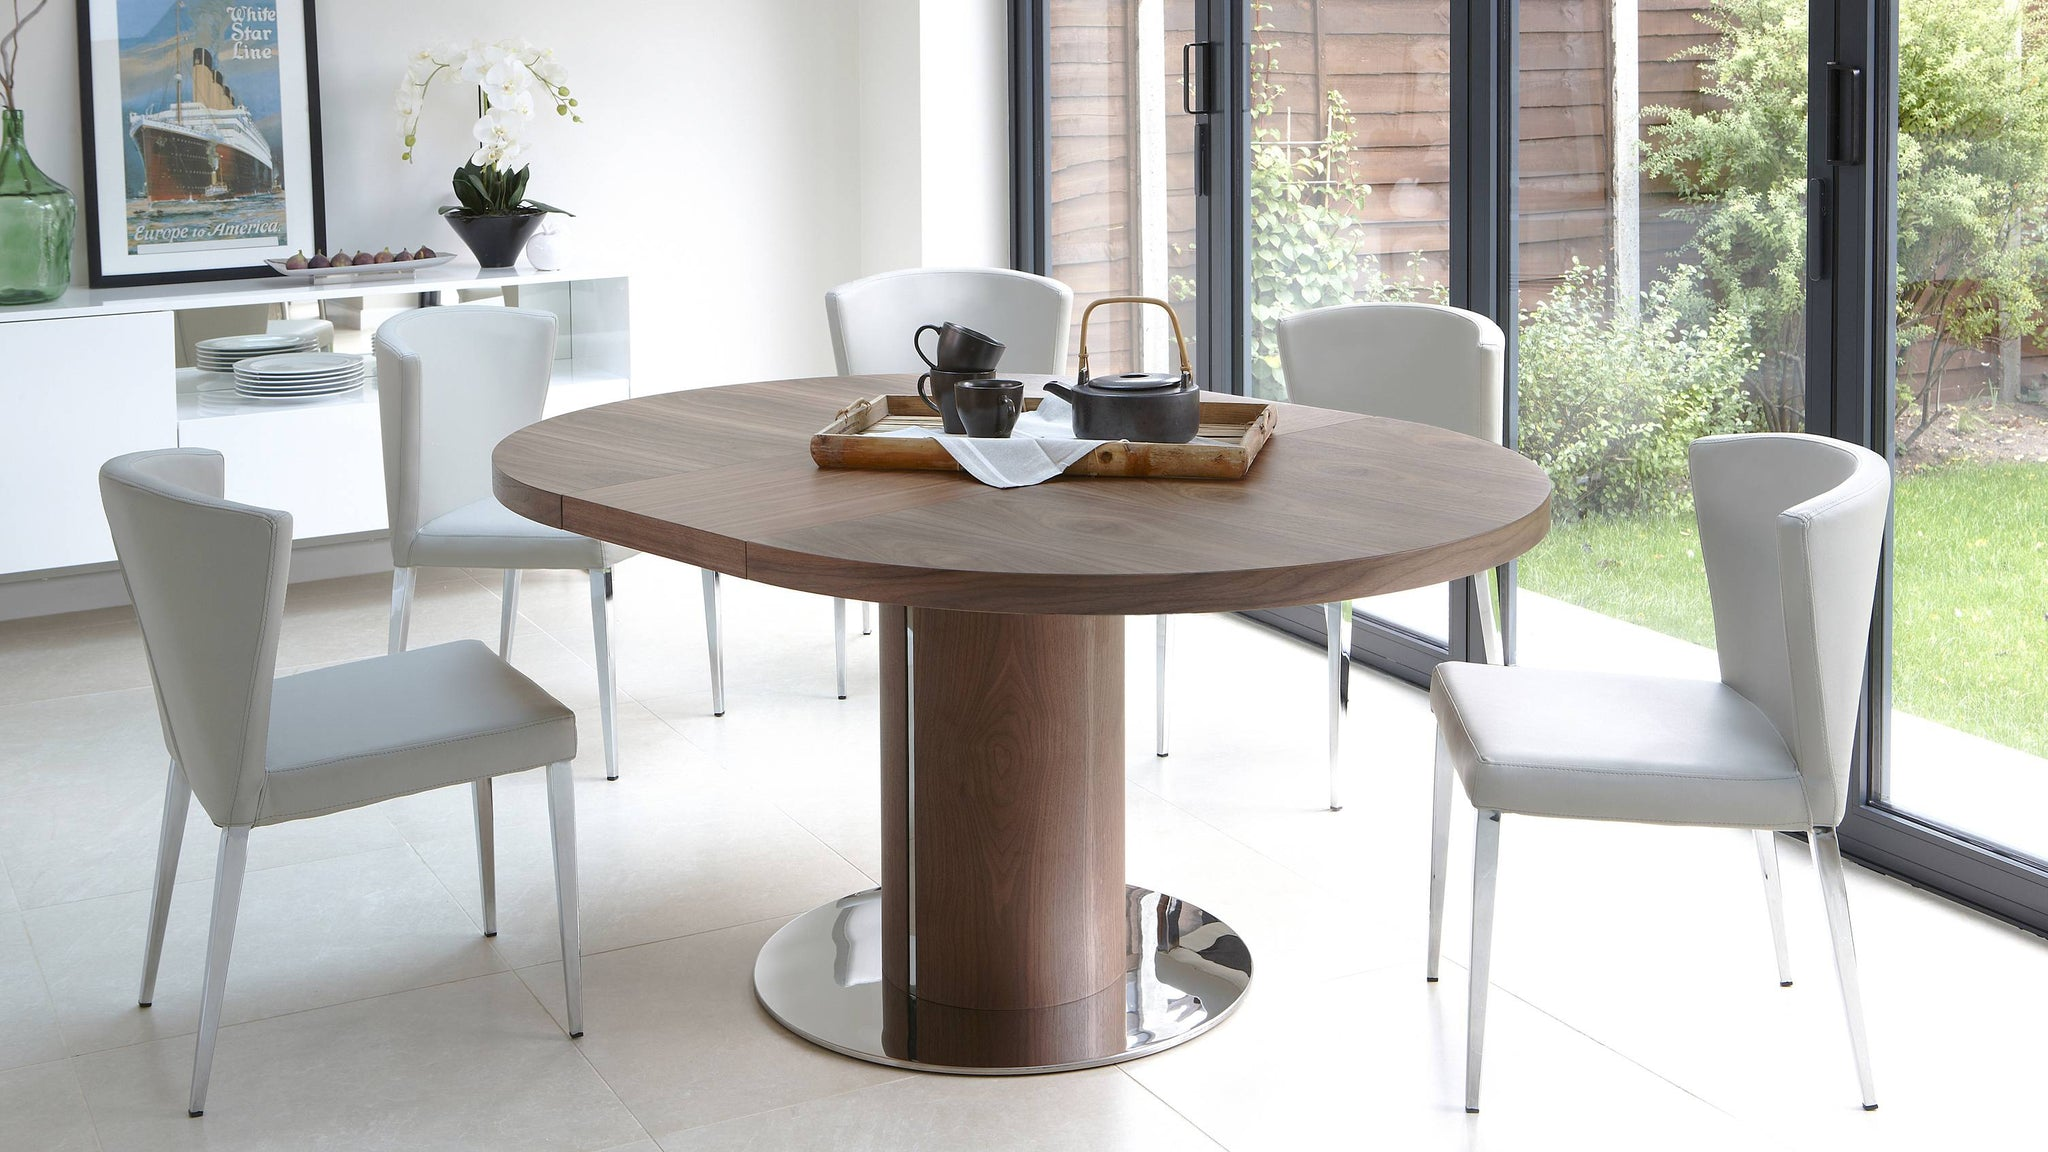 Contemporary Beige and Wooden Extending Dining Set UK